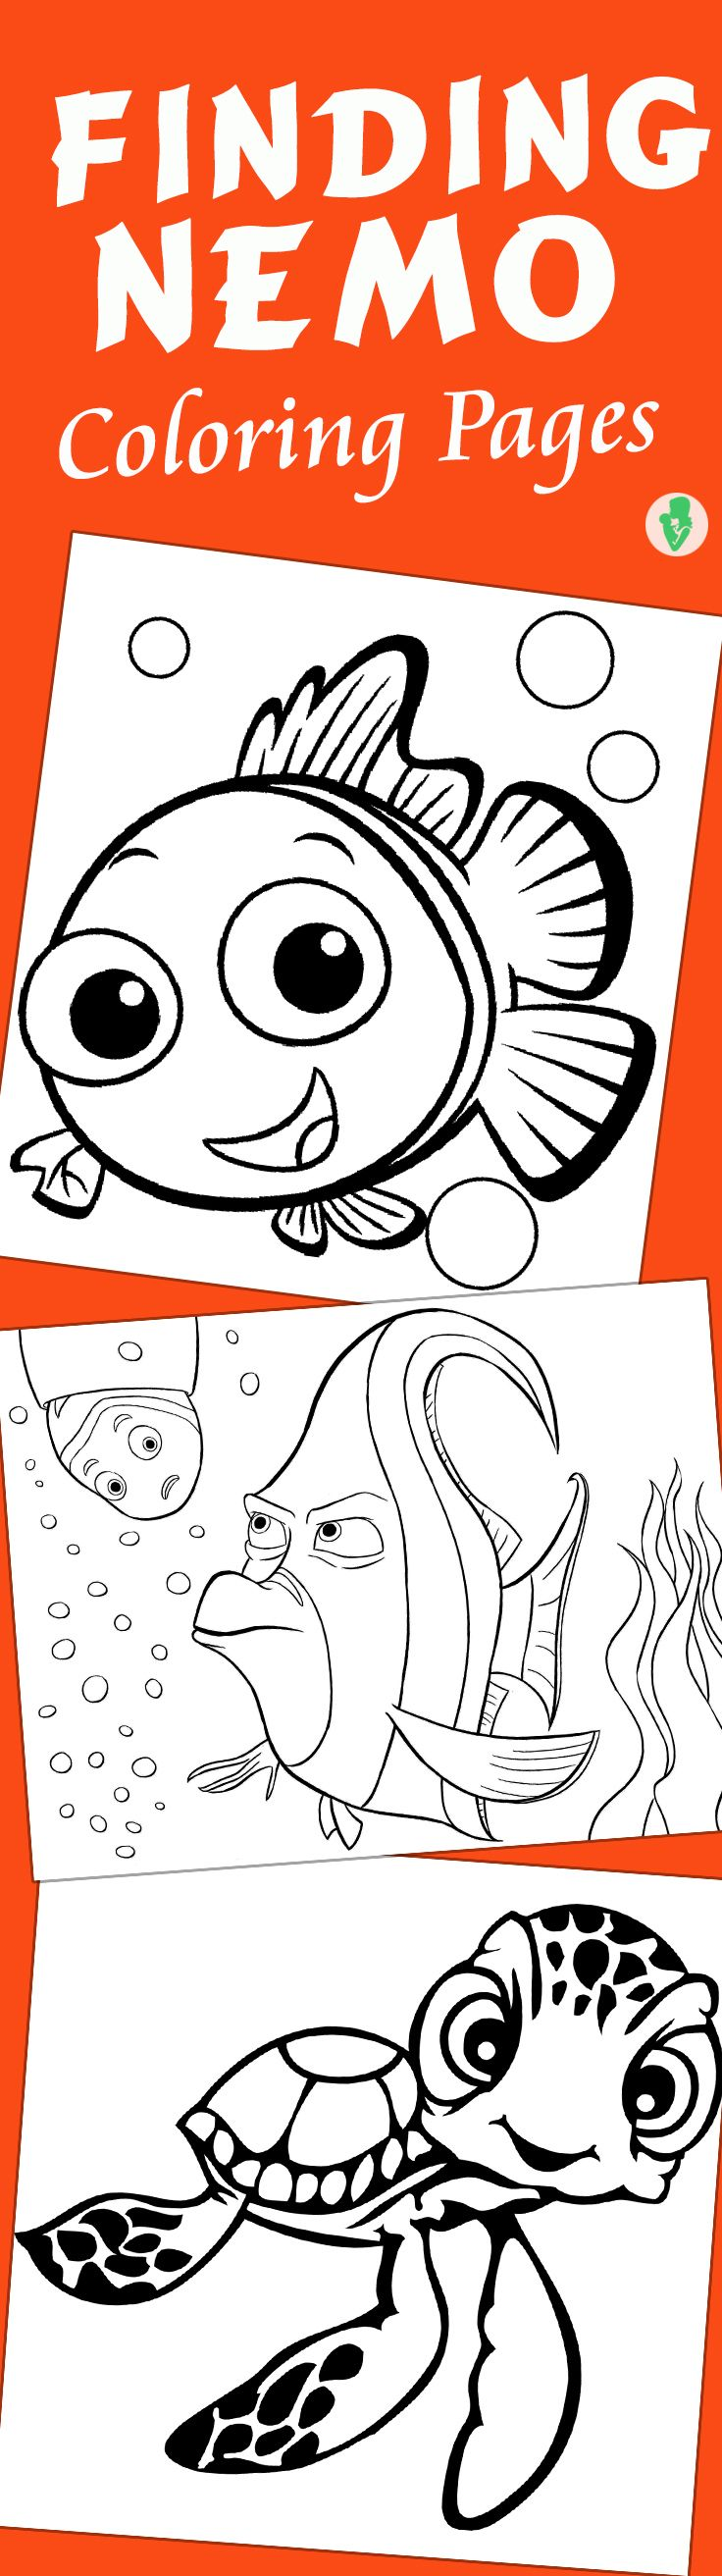 10 Cute Finding Nemo Coloring Pages // 10 páginas para colorear de Buscando a Nemo